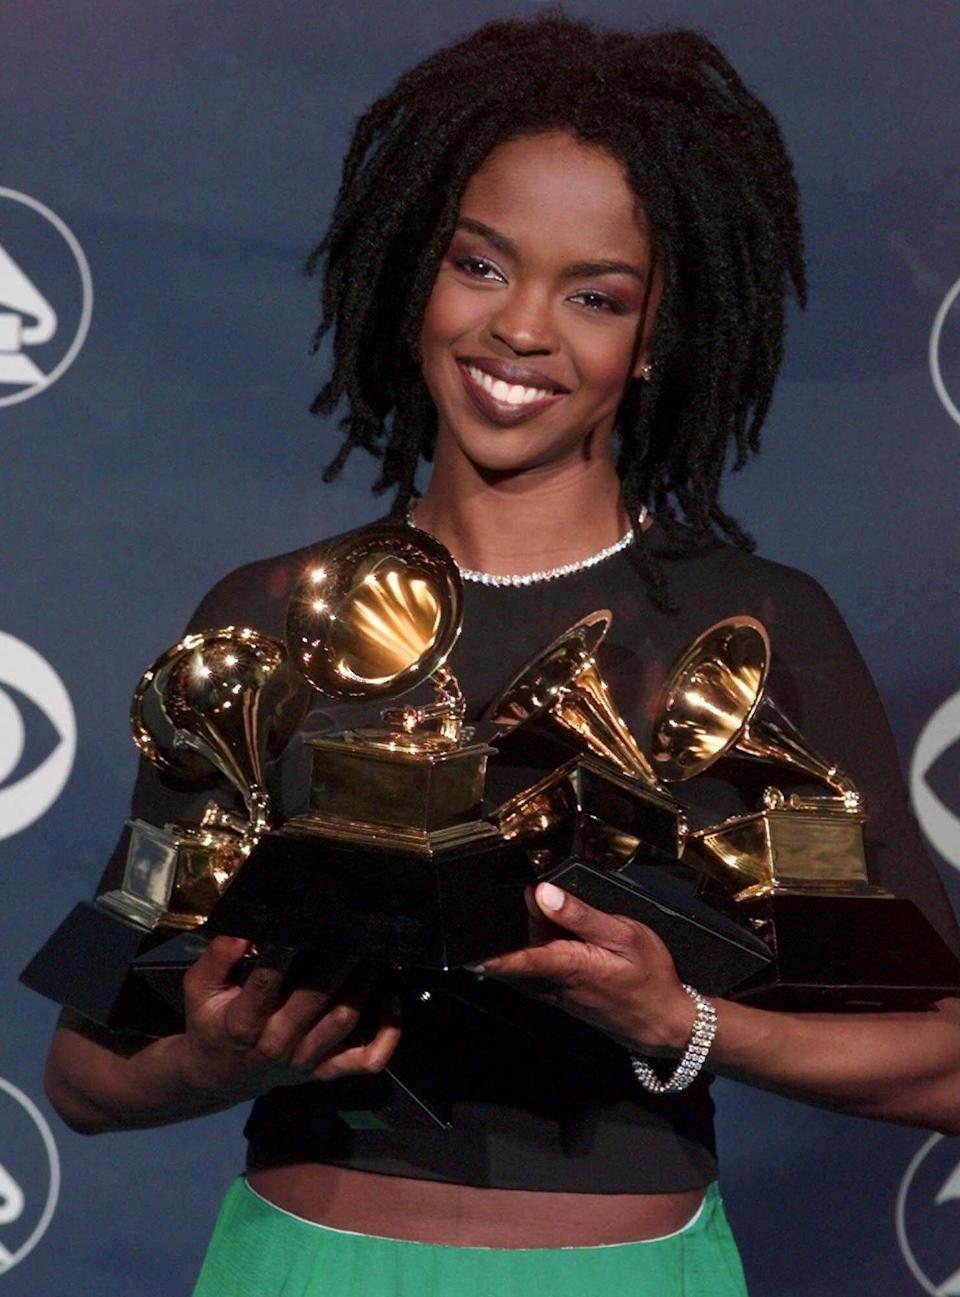 """Lauryn Hill holds her five Grammy Awards during the 41st Annual Grammy Awards at the Shrine Auditorium in Los Angeles on Feb. 24, 1999. Hill's solo debut, """"The Miseducation of Lauryn Hill,"""" was the first rap-related album nominated for album of the year, which it won in 1999. She also won best new artist that year, and is one of two rap acts to do so."""